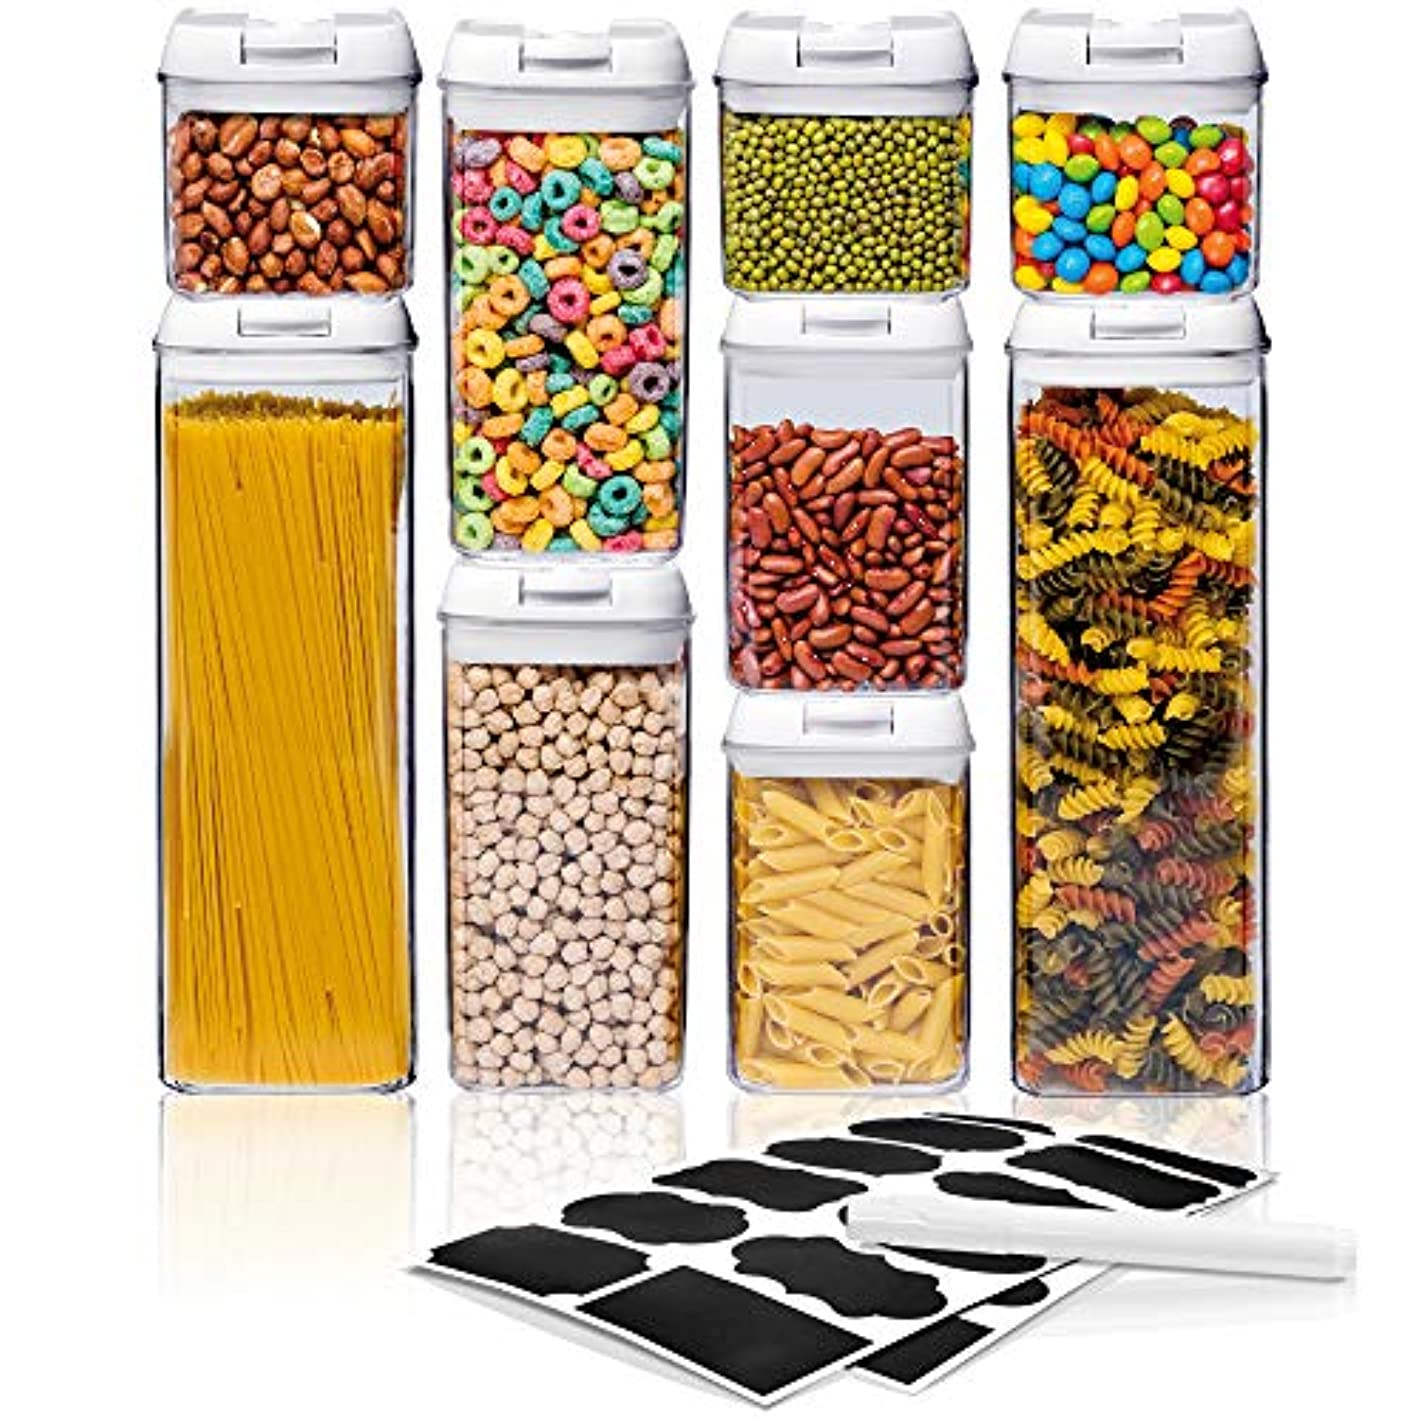 Airtight Food Storage Container Sets - Larger Sizes |Leak Proof & Interchangeable Lids| Pantry Organization| Premium Quality Clear Plastic with White Lids| BPA FREE (9-Piece Set)